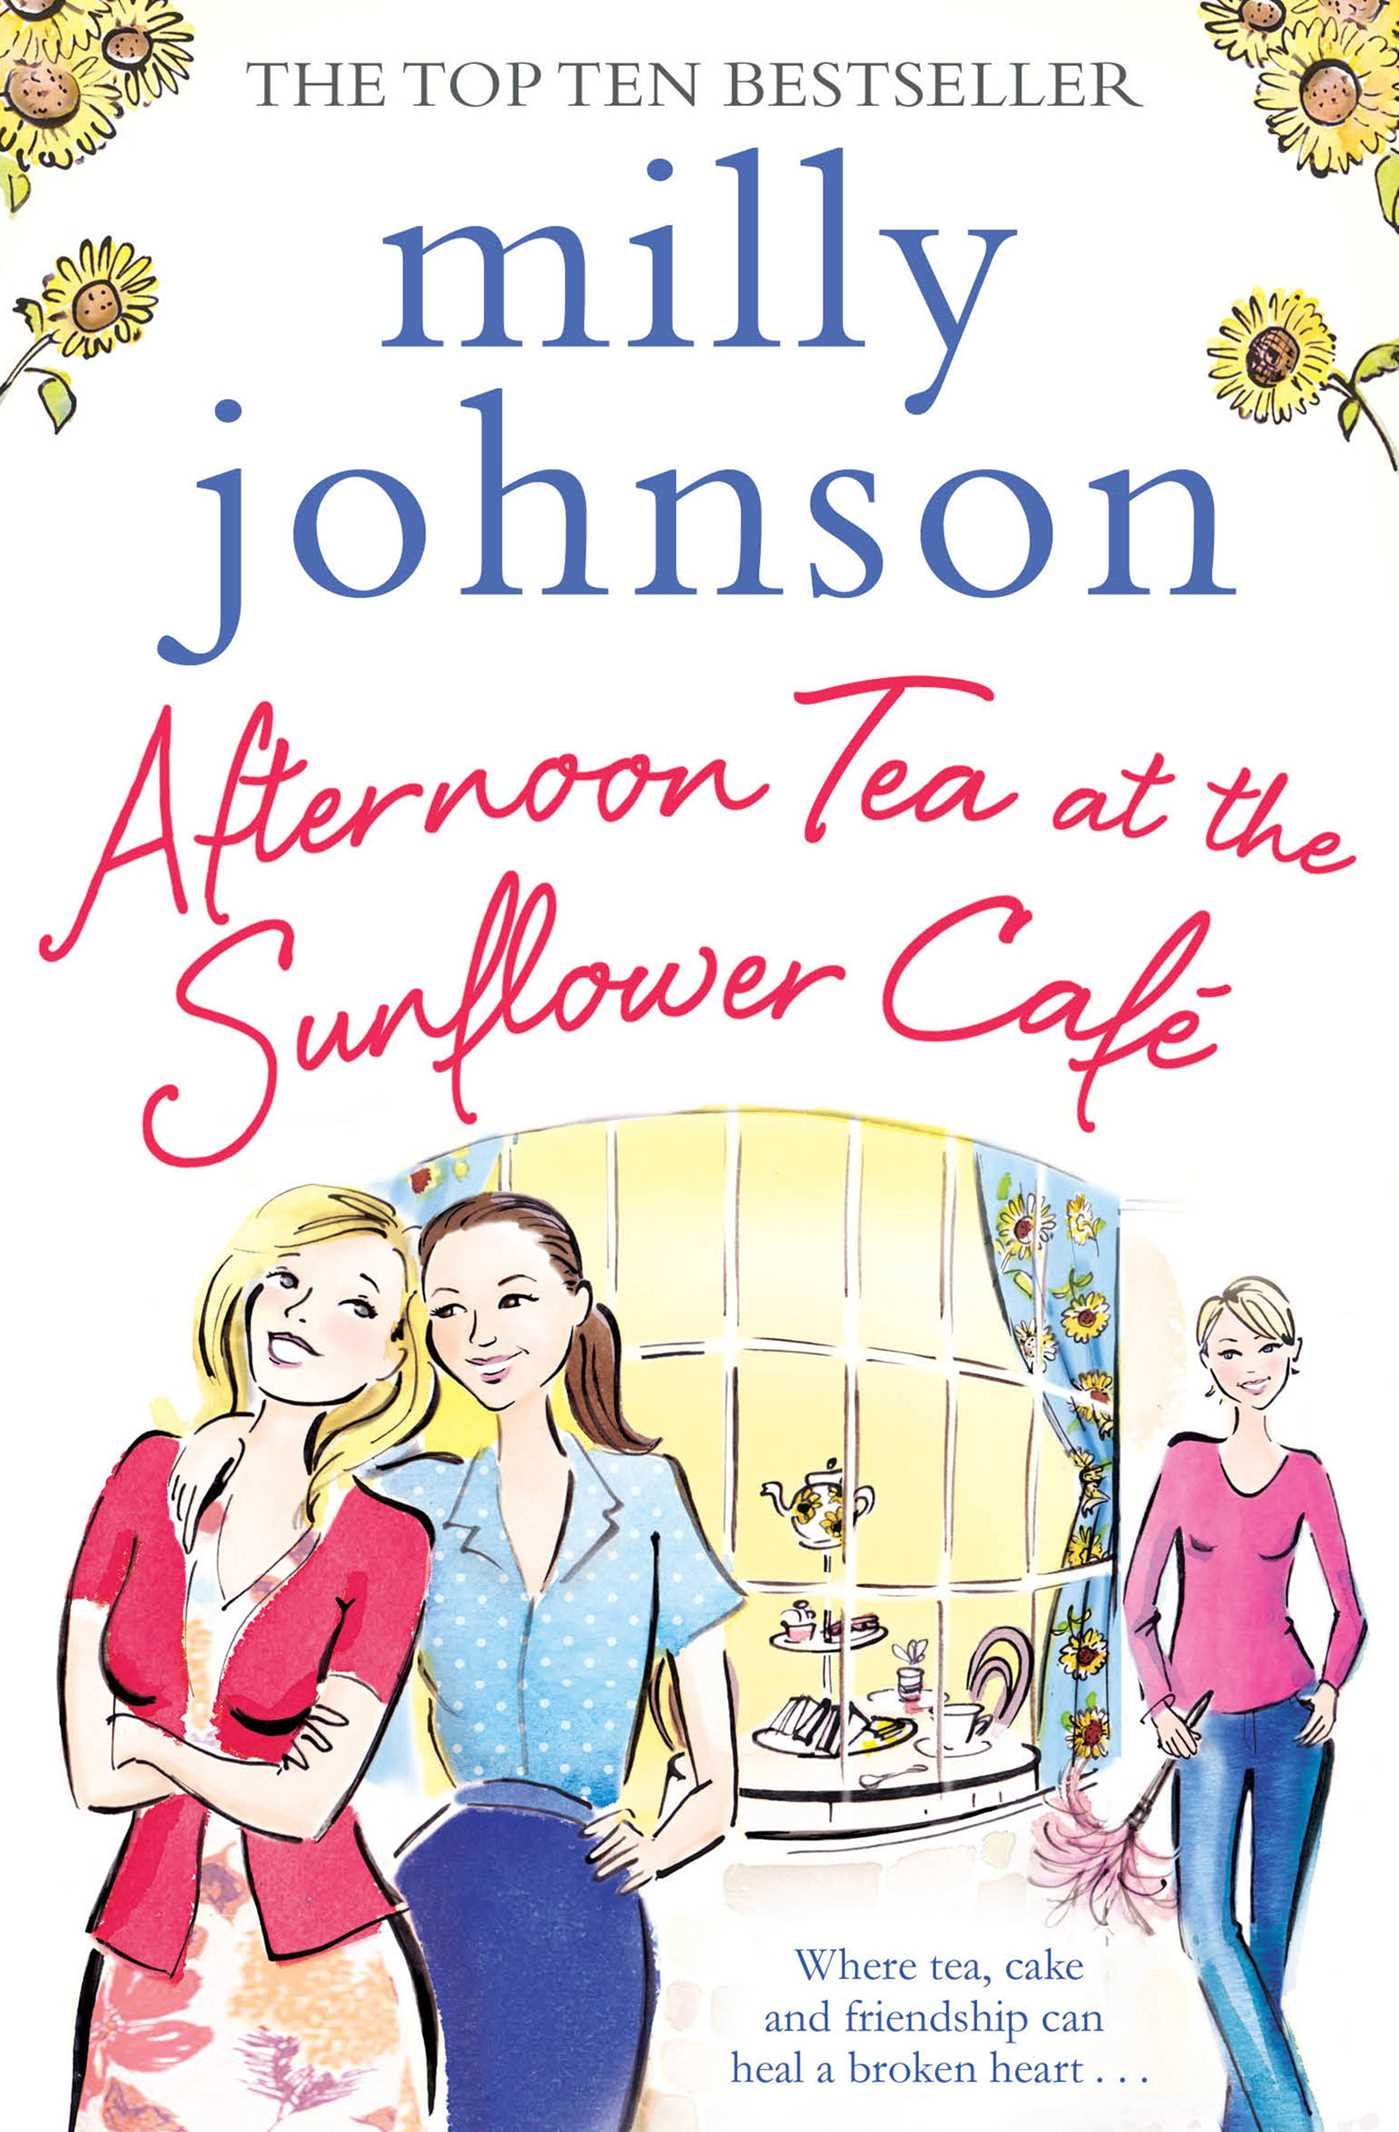 Afternoon tea at the sunflower cafe 9781471140471 hr